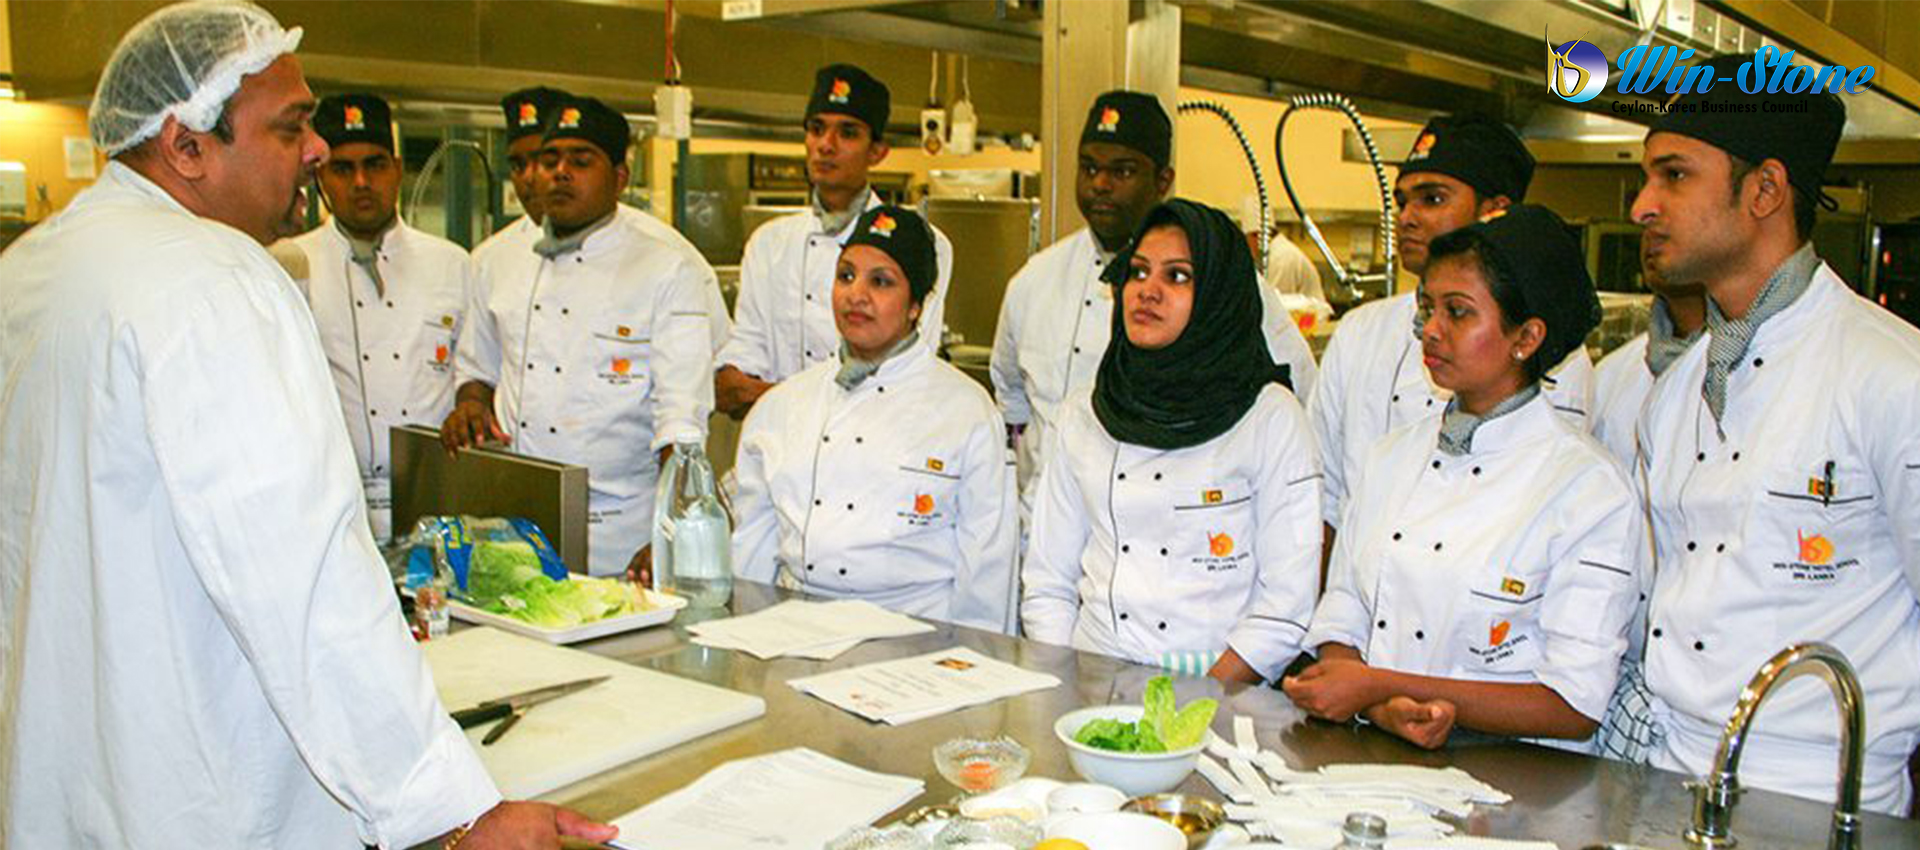 Yesman.lk - Cover Image - Win-Stone School of Culinary Art